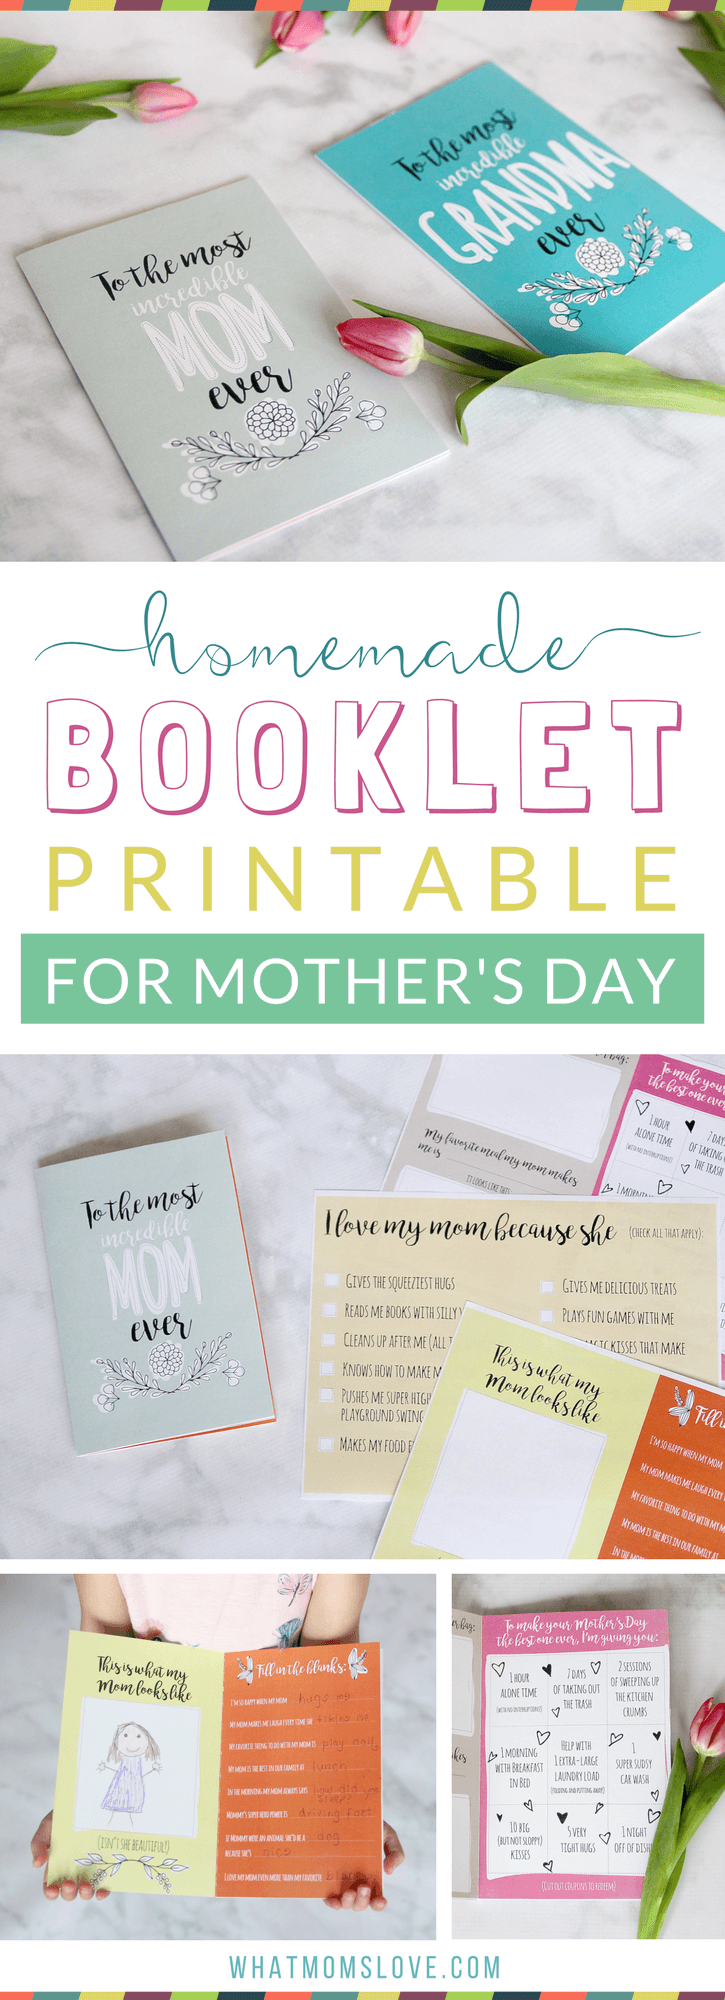 Free Printable Mothers Day Card | All About Mom or Grandma Book for kids to make - a unique personalized gift idea. Includes a fun questionnaire, coupons for mom, and space to draw and color. The perfect DIY homemade card for Mothers Day.